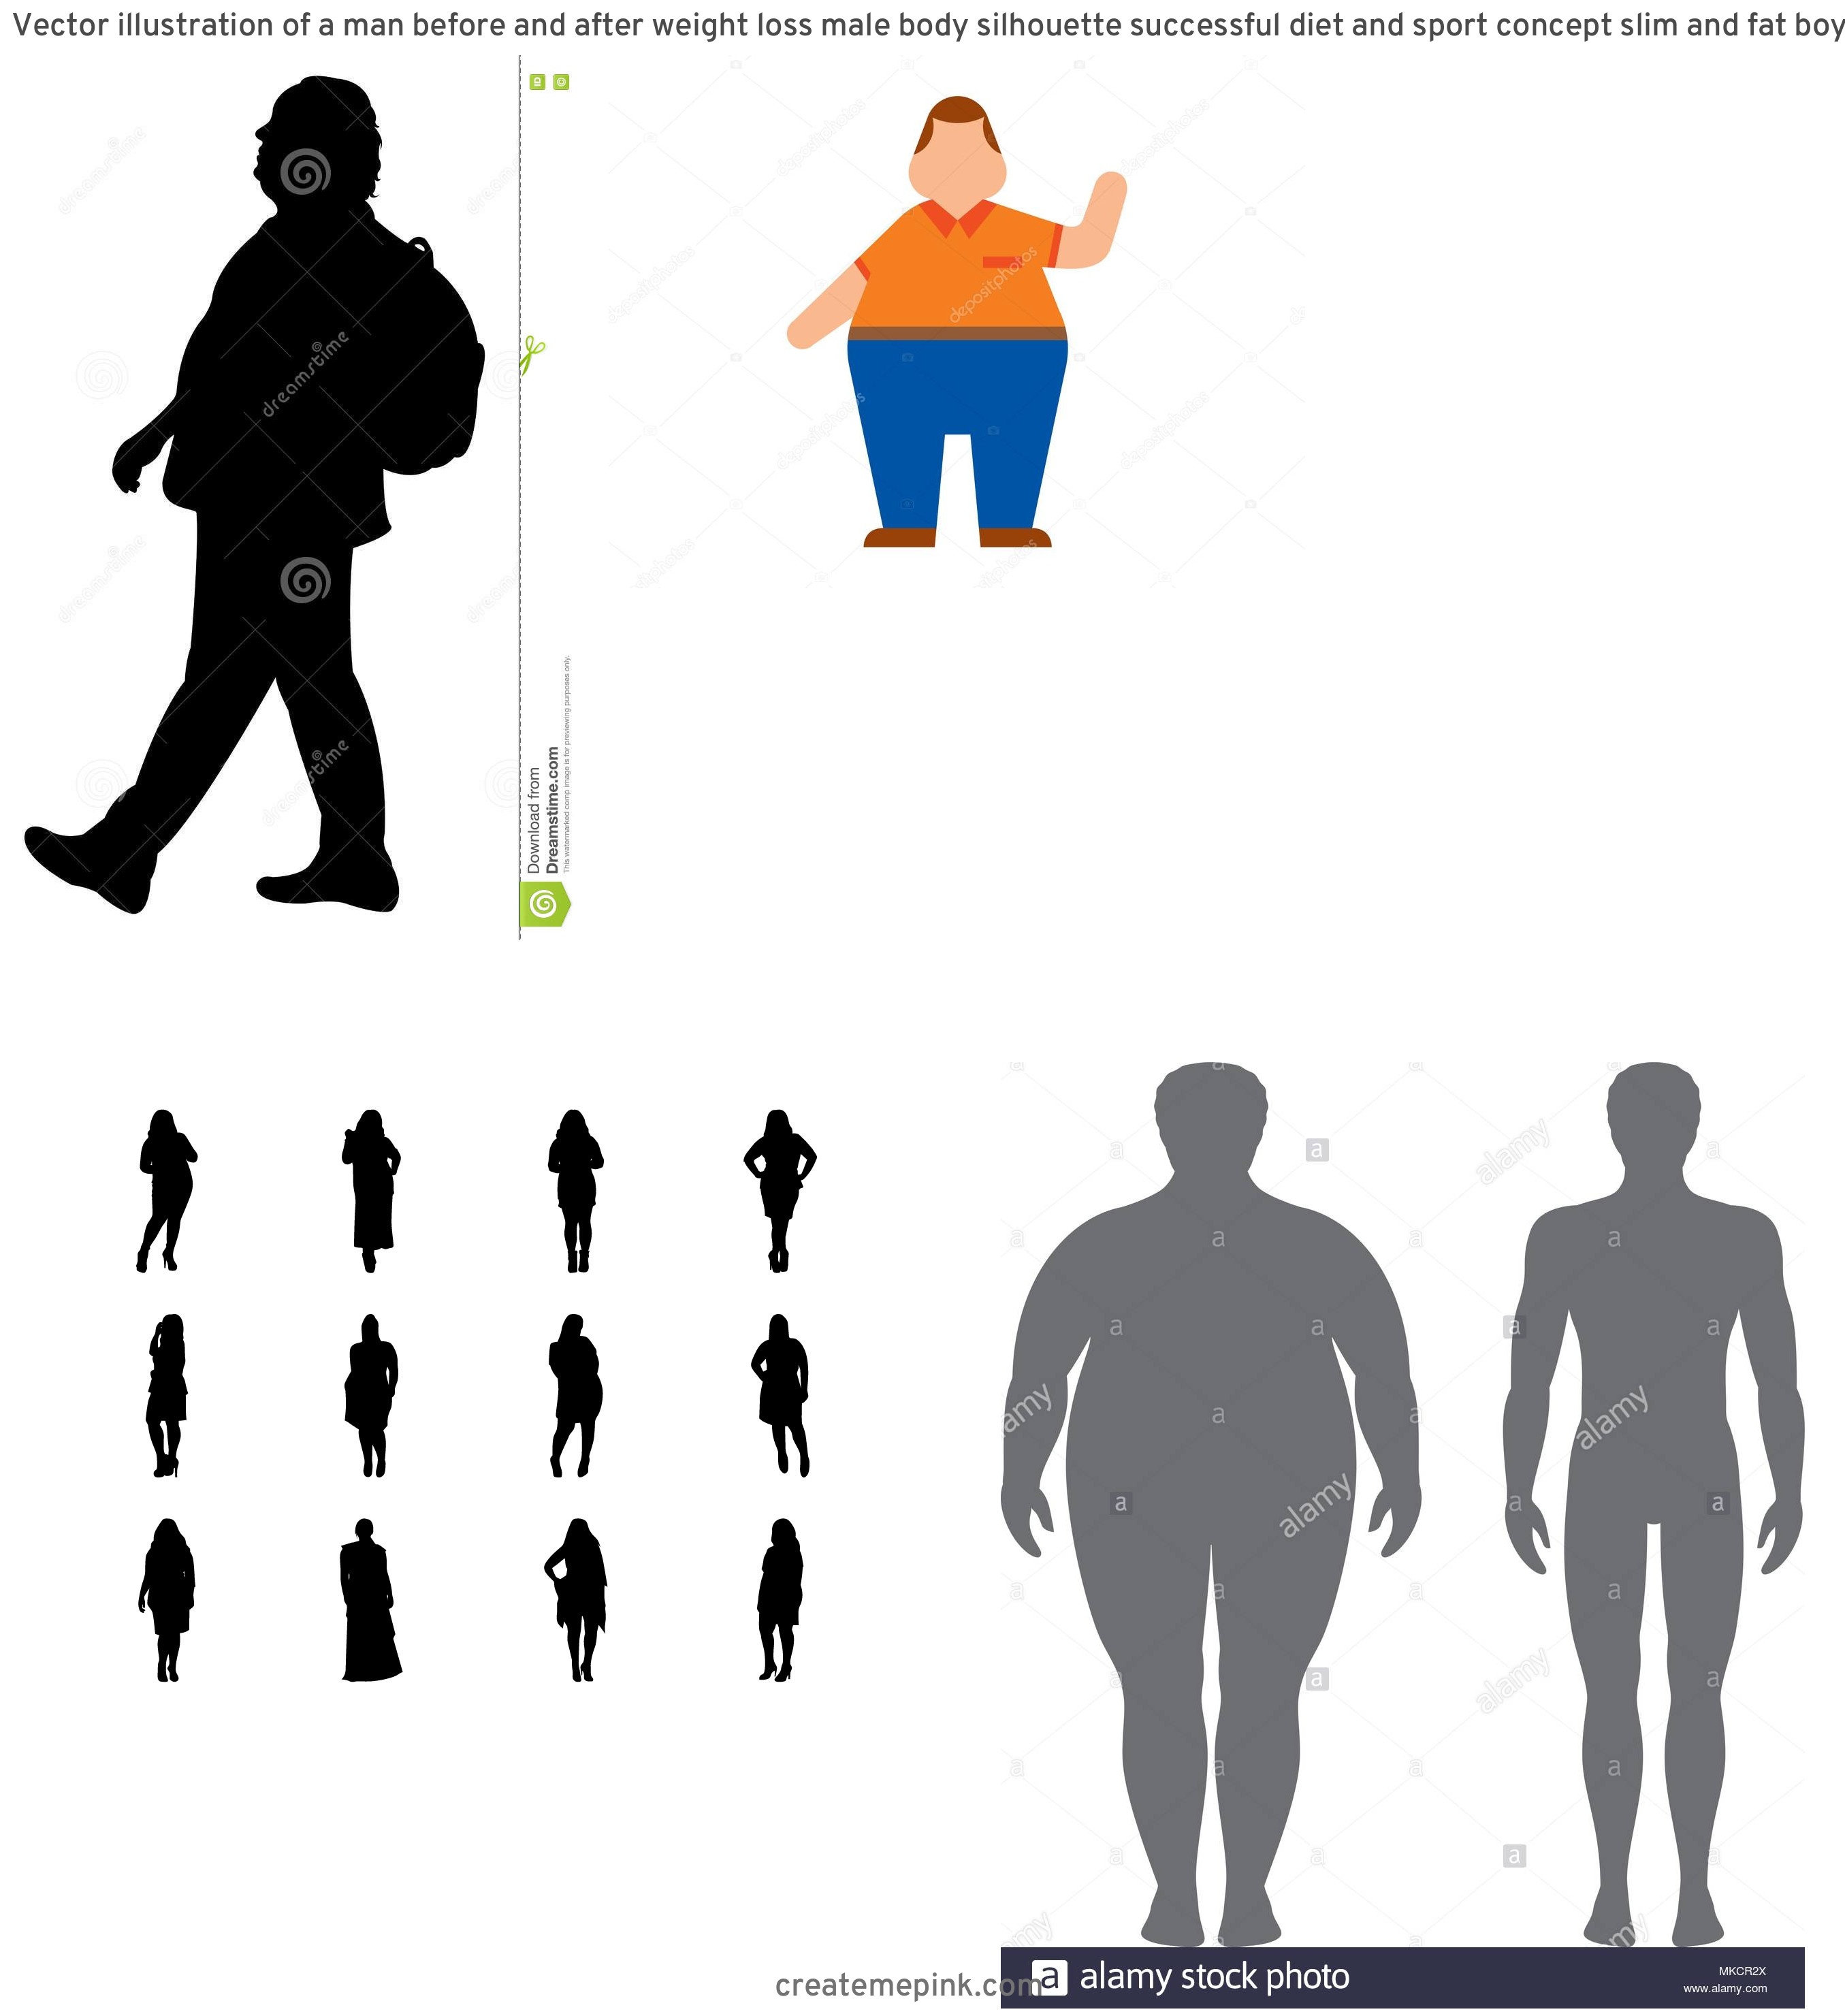 People Silhouette Vector Illustration Of Fat: Vector Illustration Of A Man Before And After Weight Loss Male Body Silhouette Successful Diet And Sport Concept Slim And Fat Boys Image